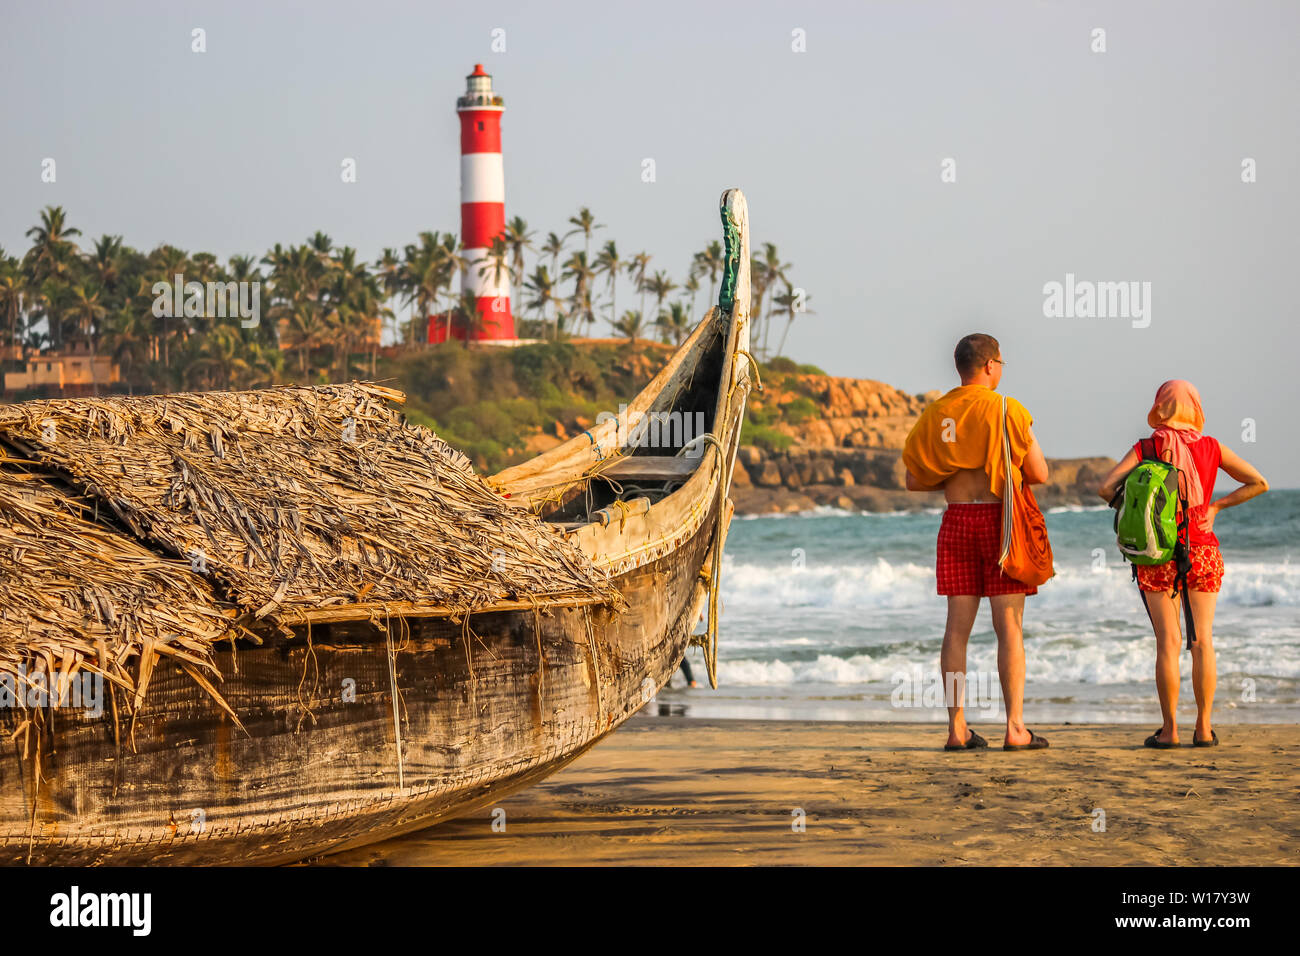 Kerala, India: Dated-June 14, 2019: A beach in Kerala Goa with a lighthouse in the background and a traditional fishing boat in the foreground. Foreig Stock Photo